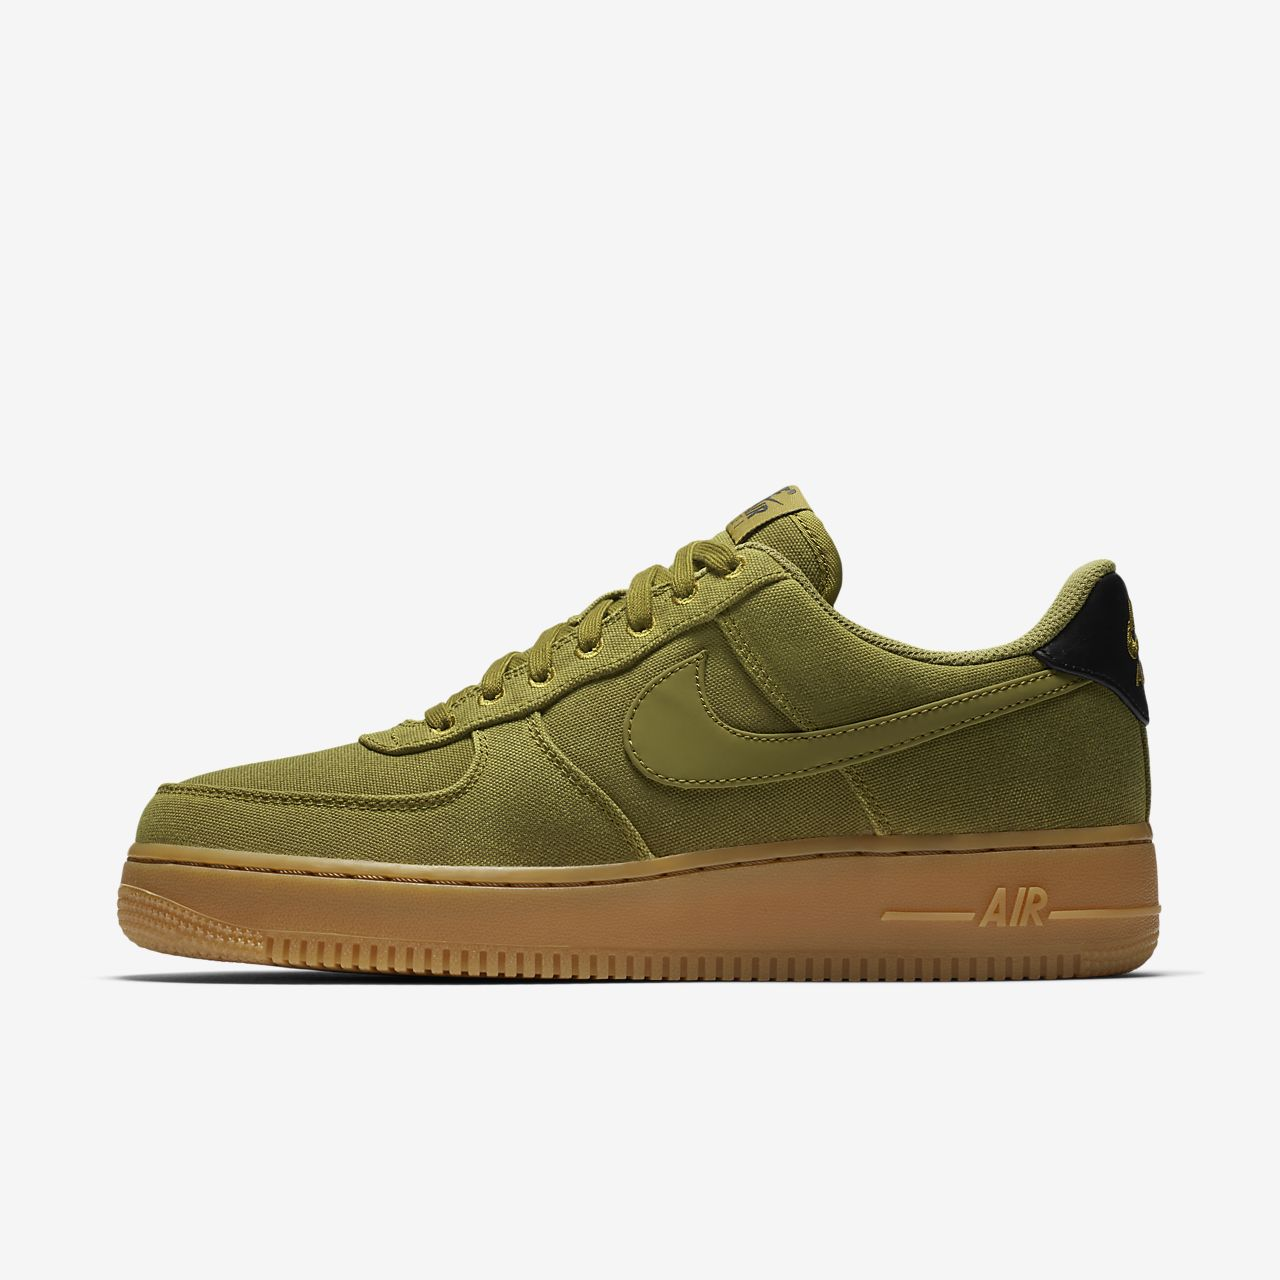 new arrival 6a3fe a91e2 Chaussure Nike Air Force 1 07 LV8 Style pour Homme